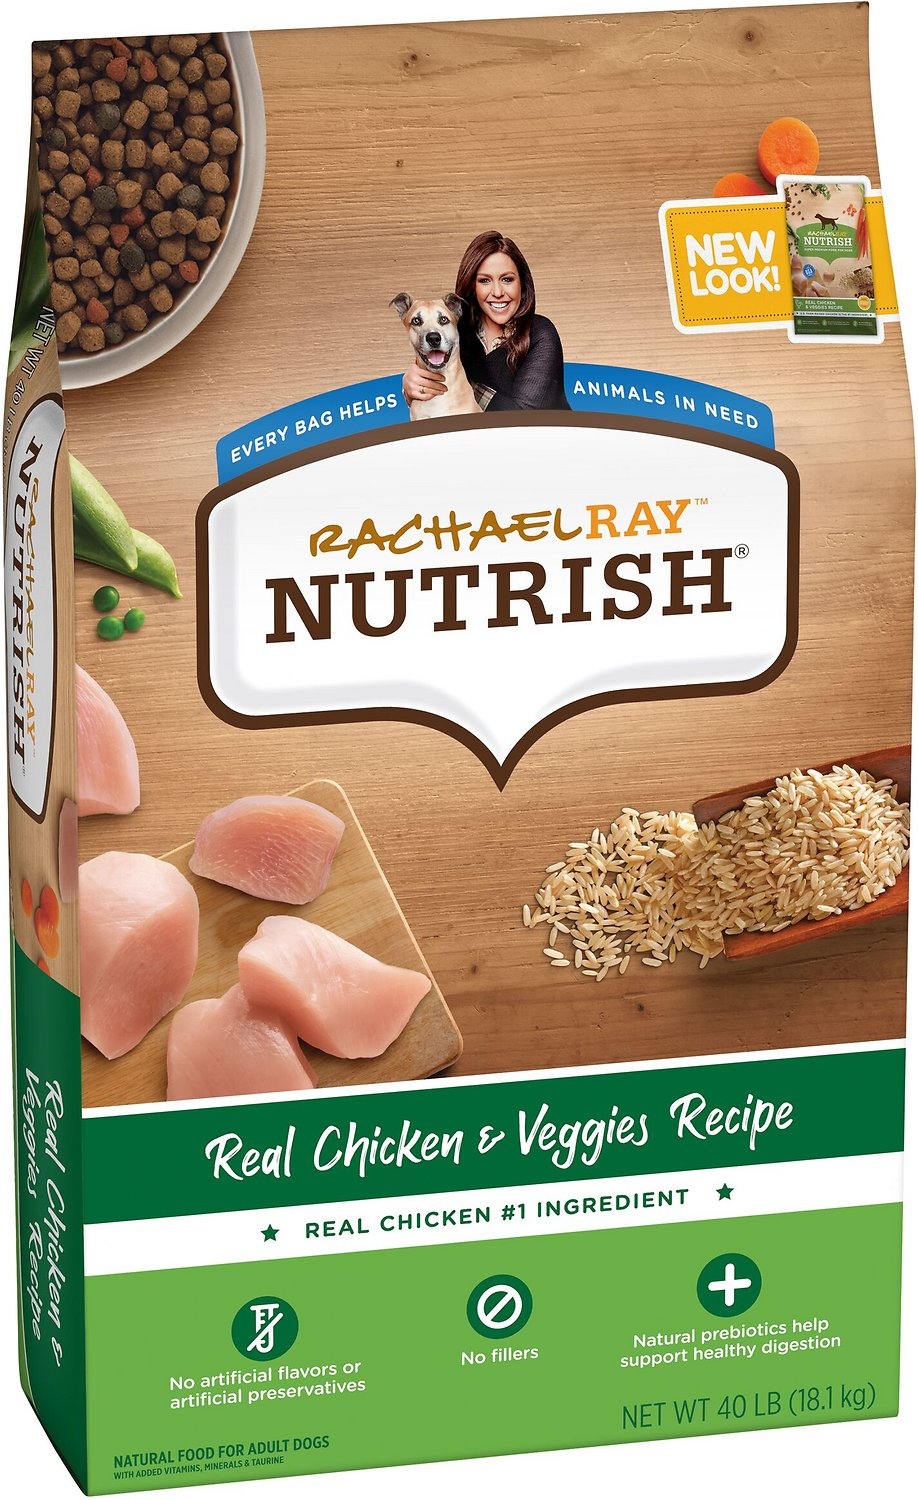 Best Natural Dog Food >> Rachael Ray Nutrish Natural Chicken Veggies Recipe Dry Dog Food 40 Lb Bag